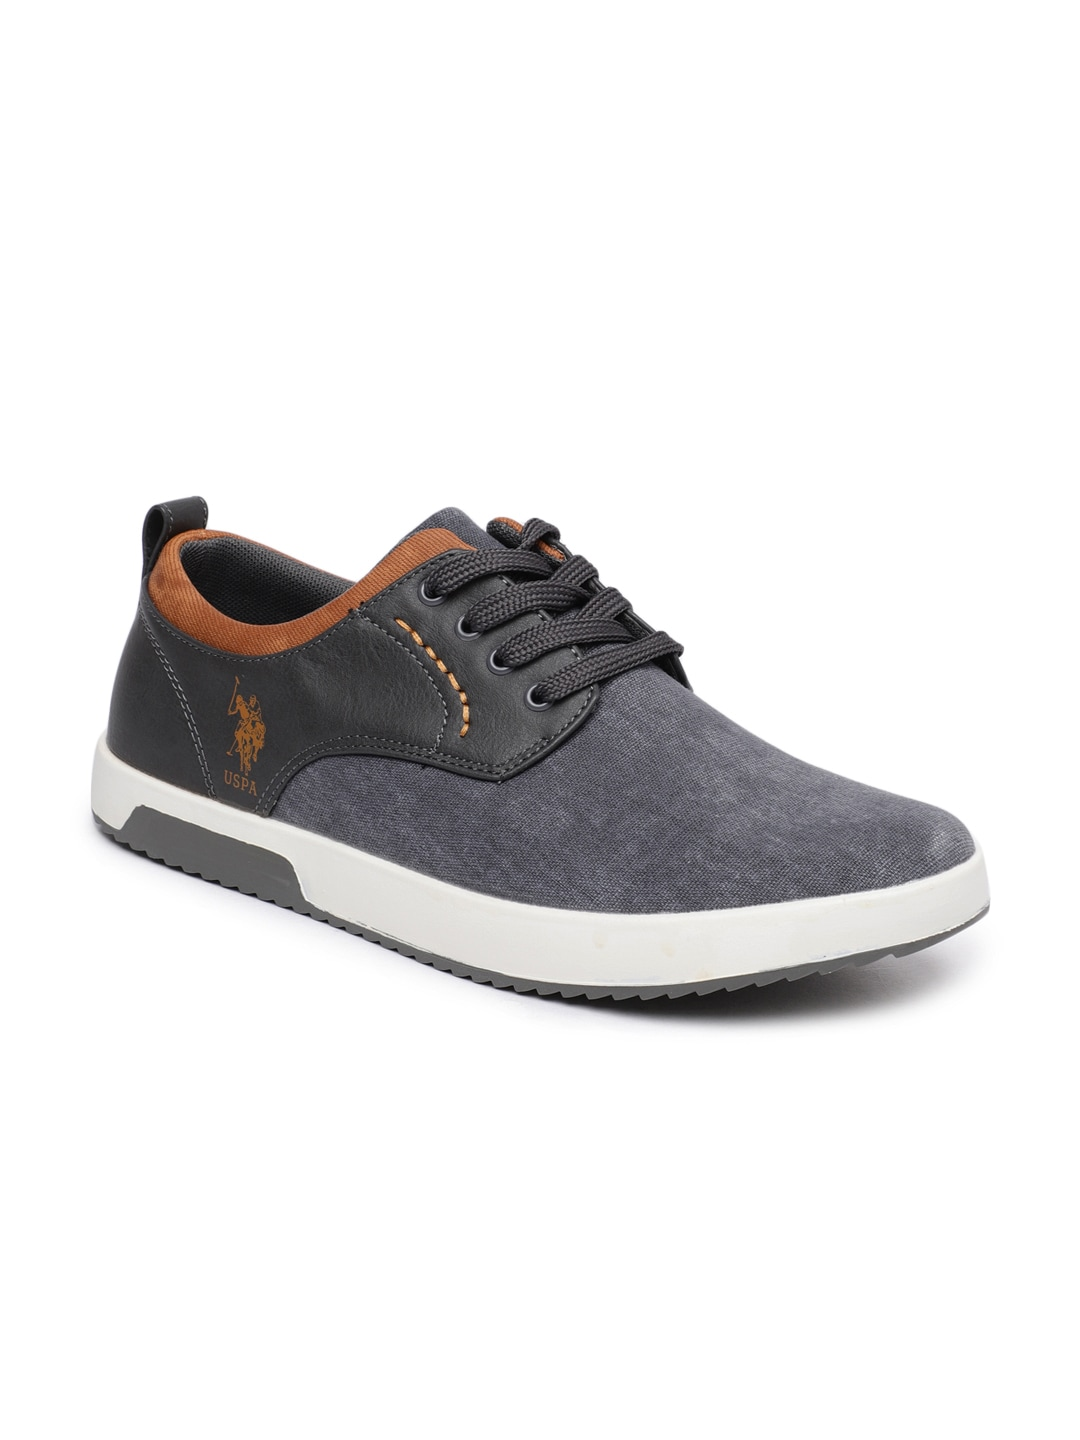 5c753d4369c U.S. Polo Assn. Casual Shoes - Buy U.S. Polo Assn. Casual Shoes Online